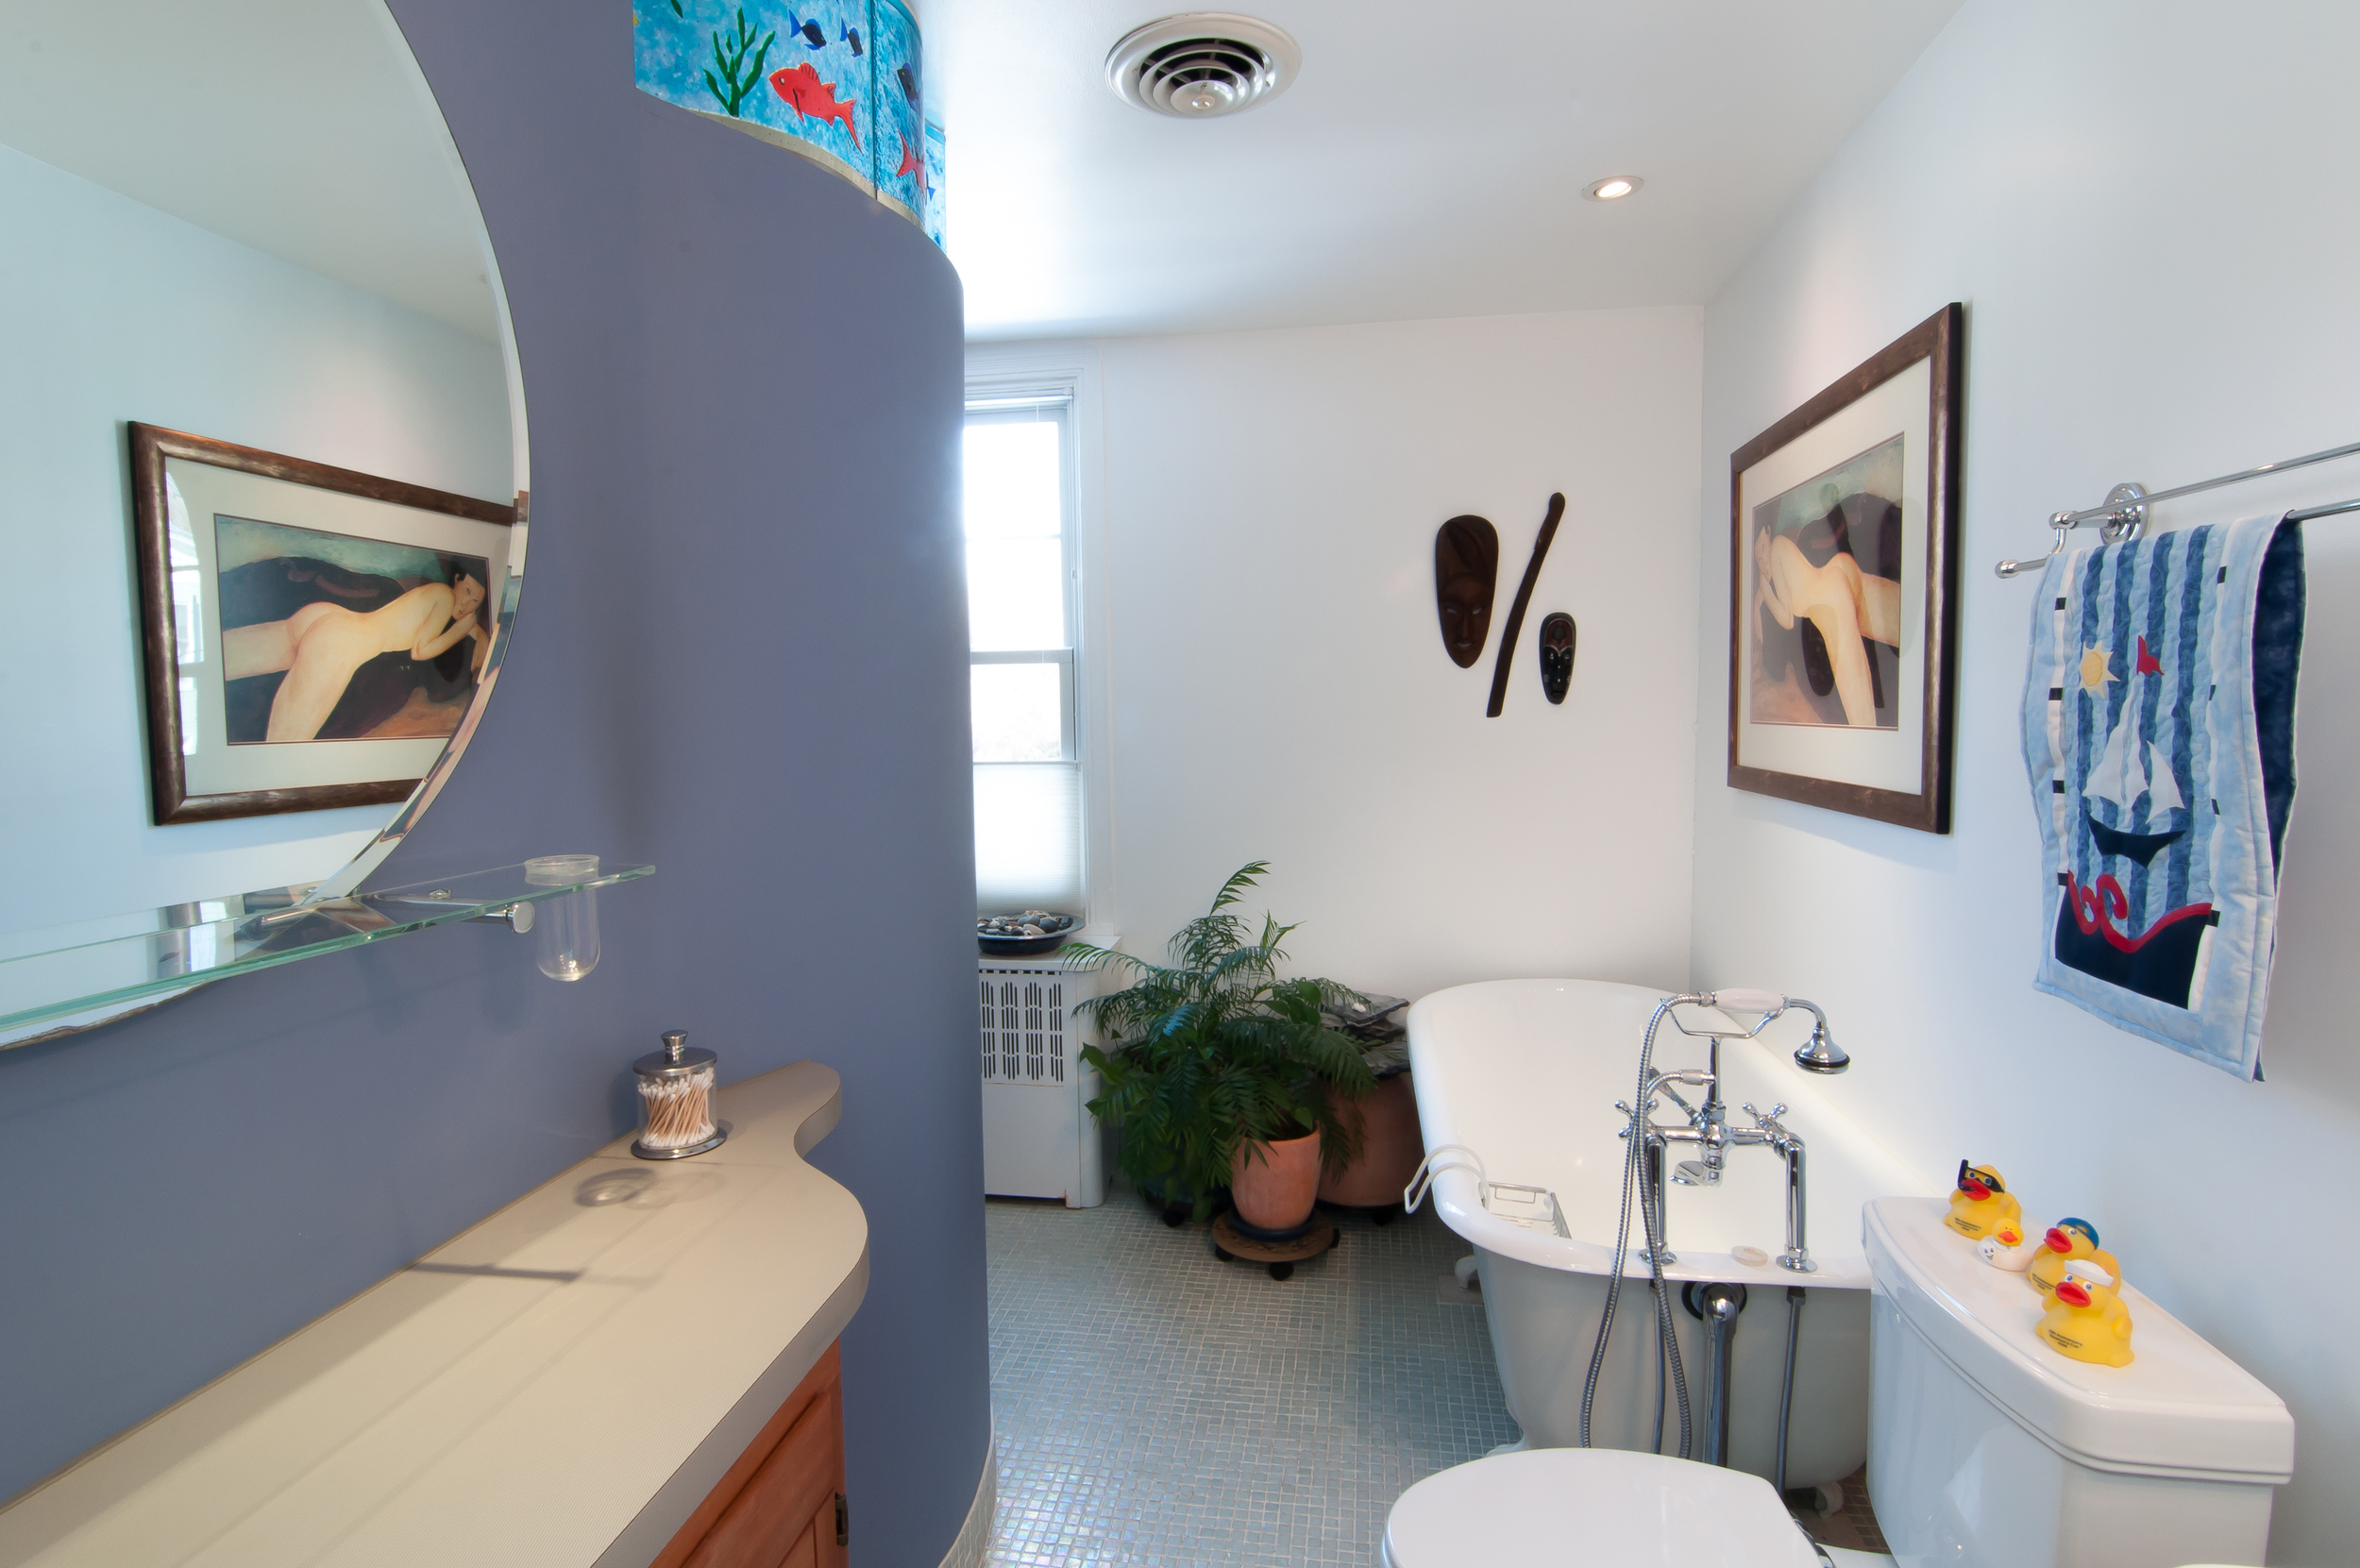 The Master bathroom with a walk in shower, claw foot tub, and farm-style sink.